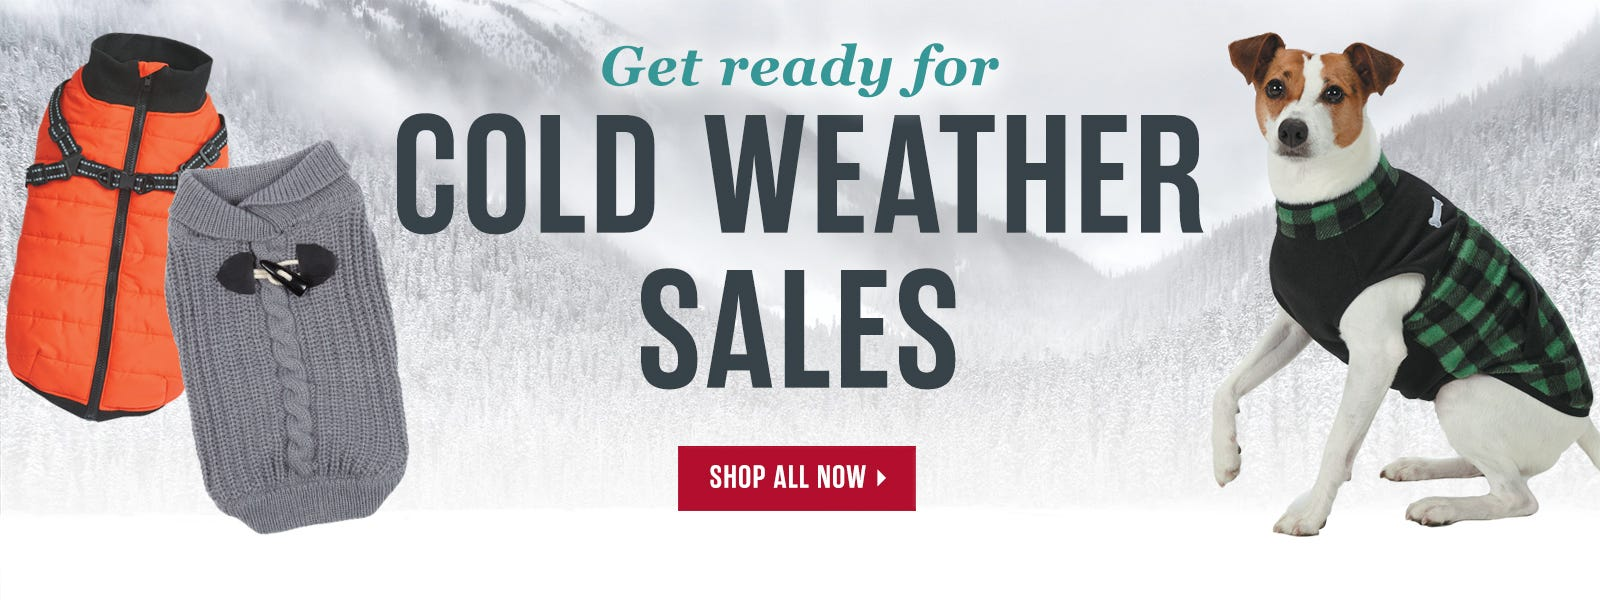 Get Ready for Cold Weather Sales